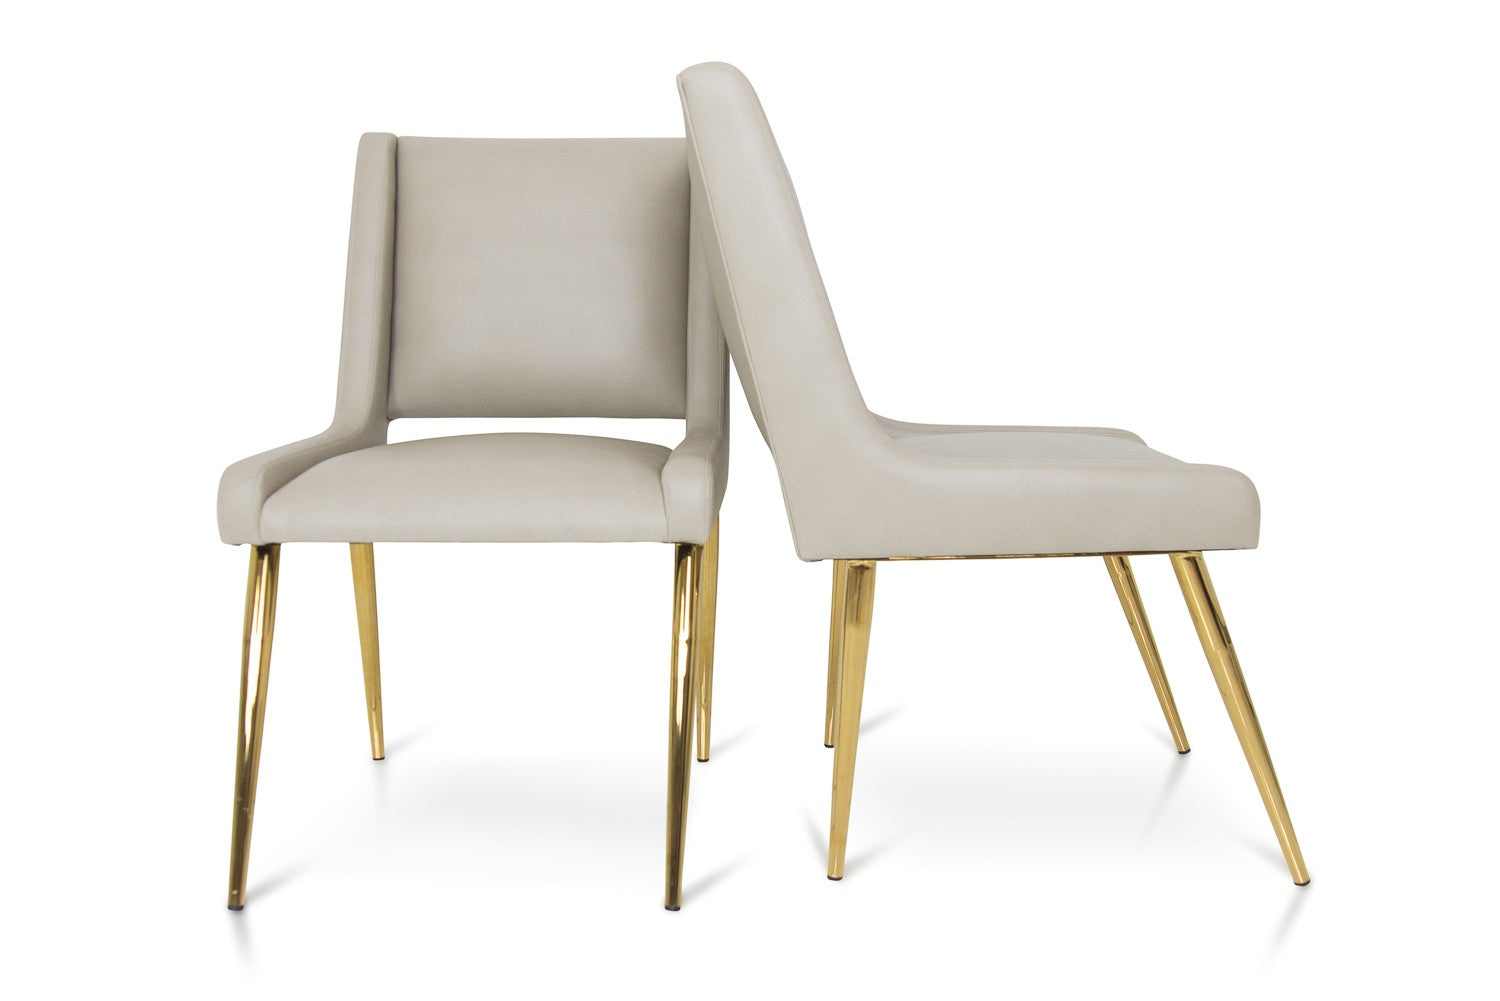 Mid Century Style Dining Chair With Brass Legs Modshop Modshop